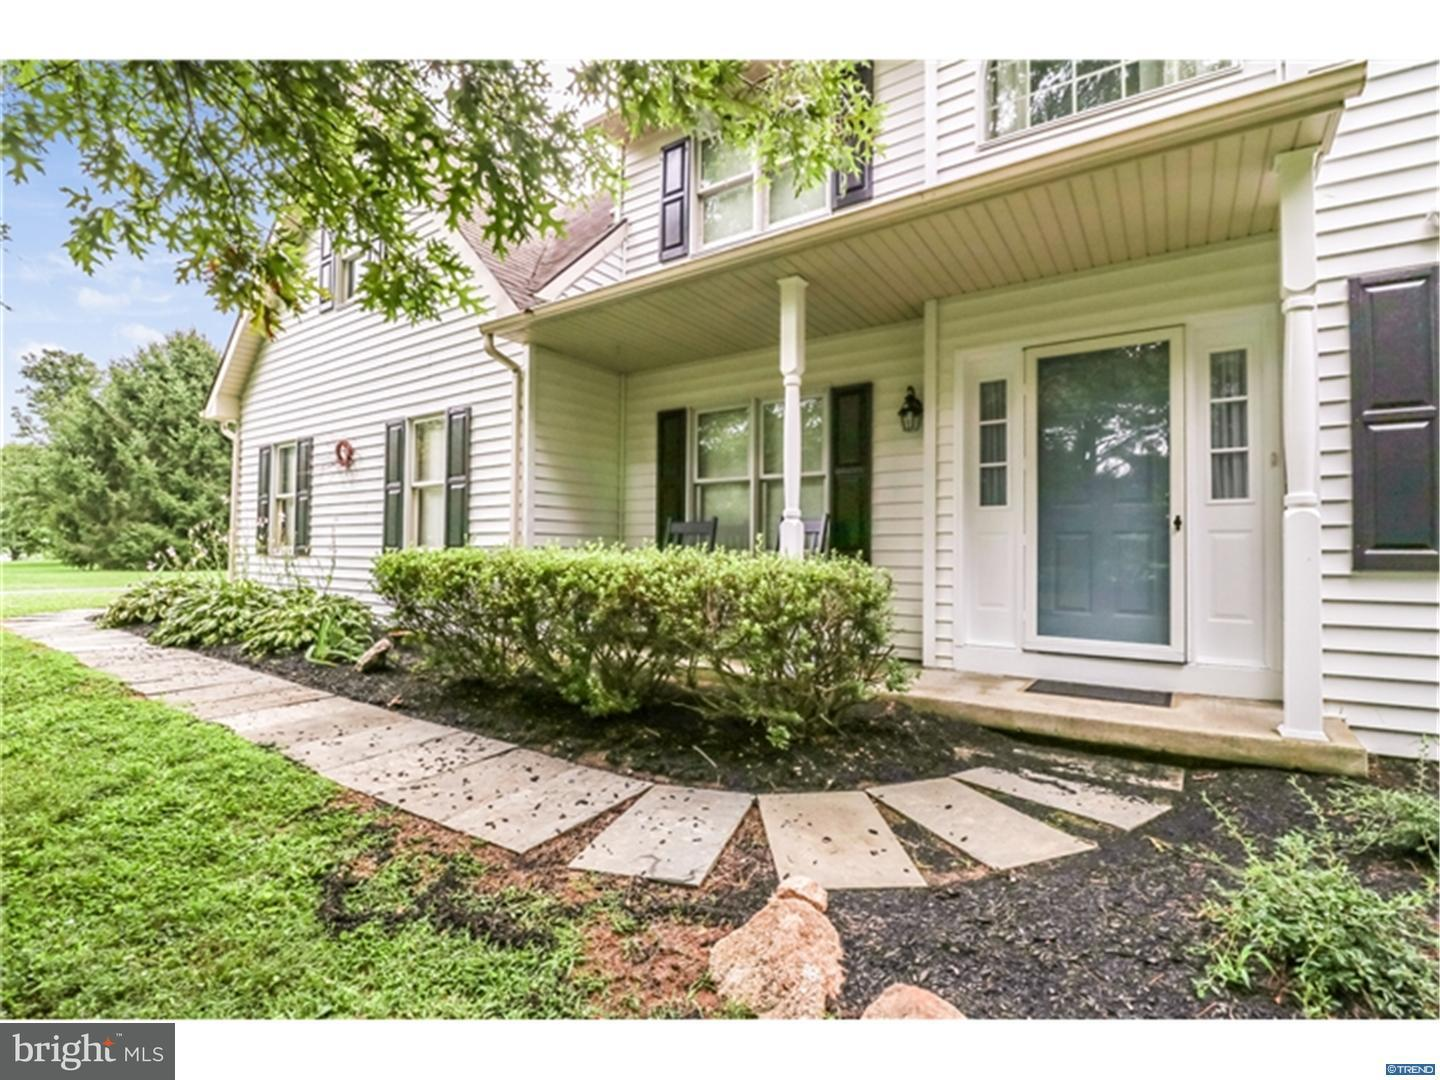 101 GREAT OAK DR, LINCOLN UNIVERSITY - Listed at $419,900, LINCOLN UNIVERSITY